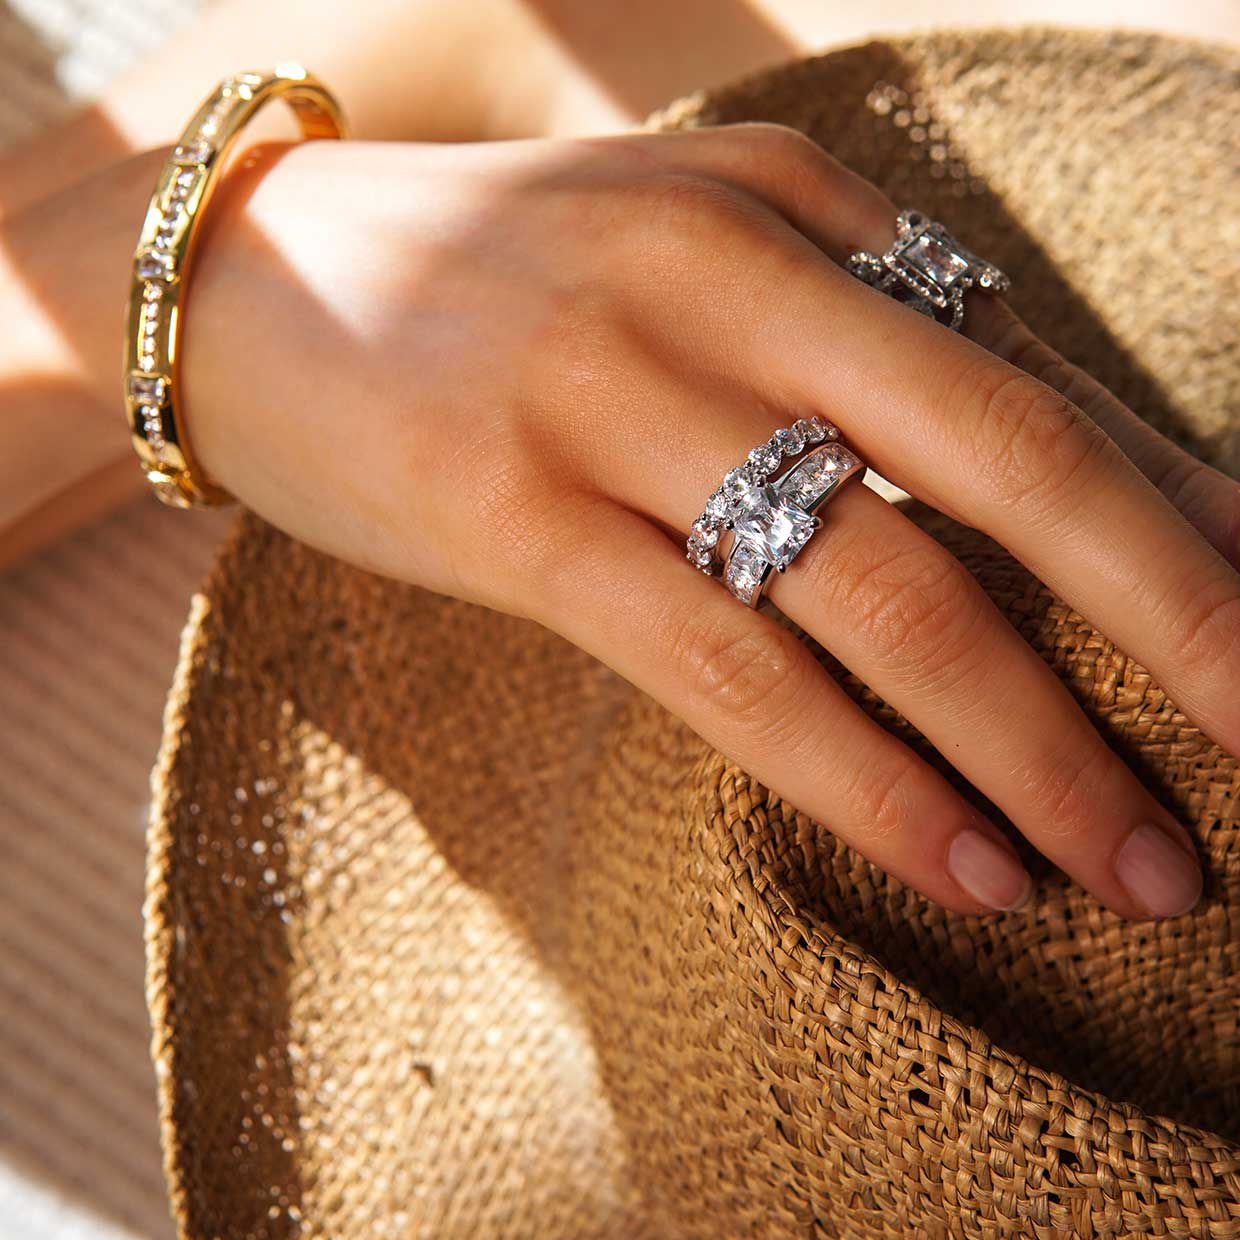 Abelstedt jewelry on hand holding a hat